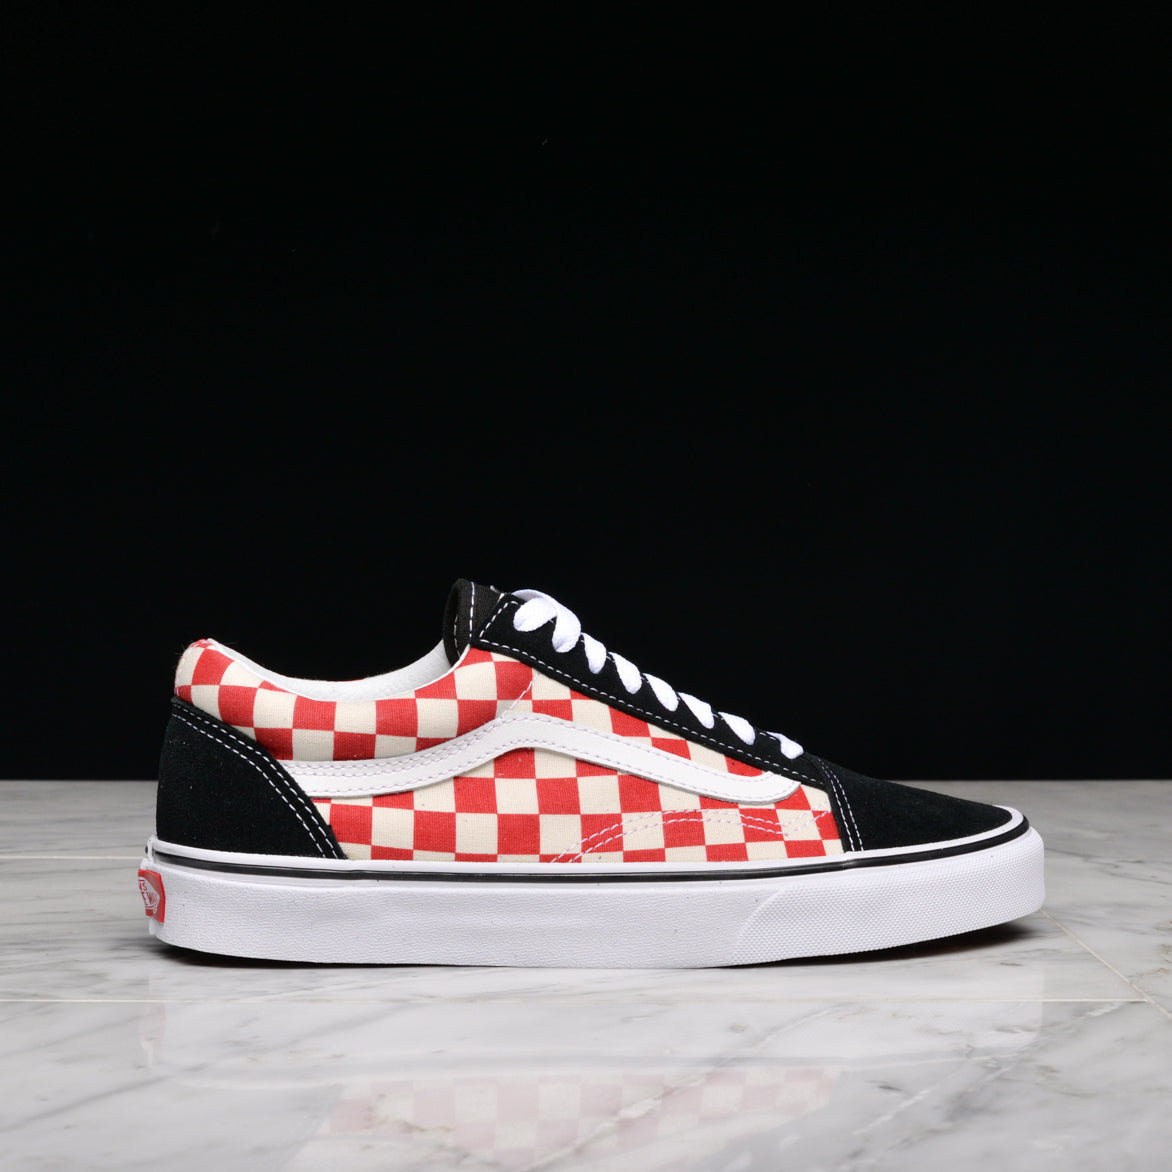 OLD SKOOL - BLACK / RED CHECKERBOARD